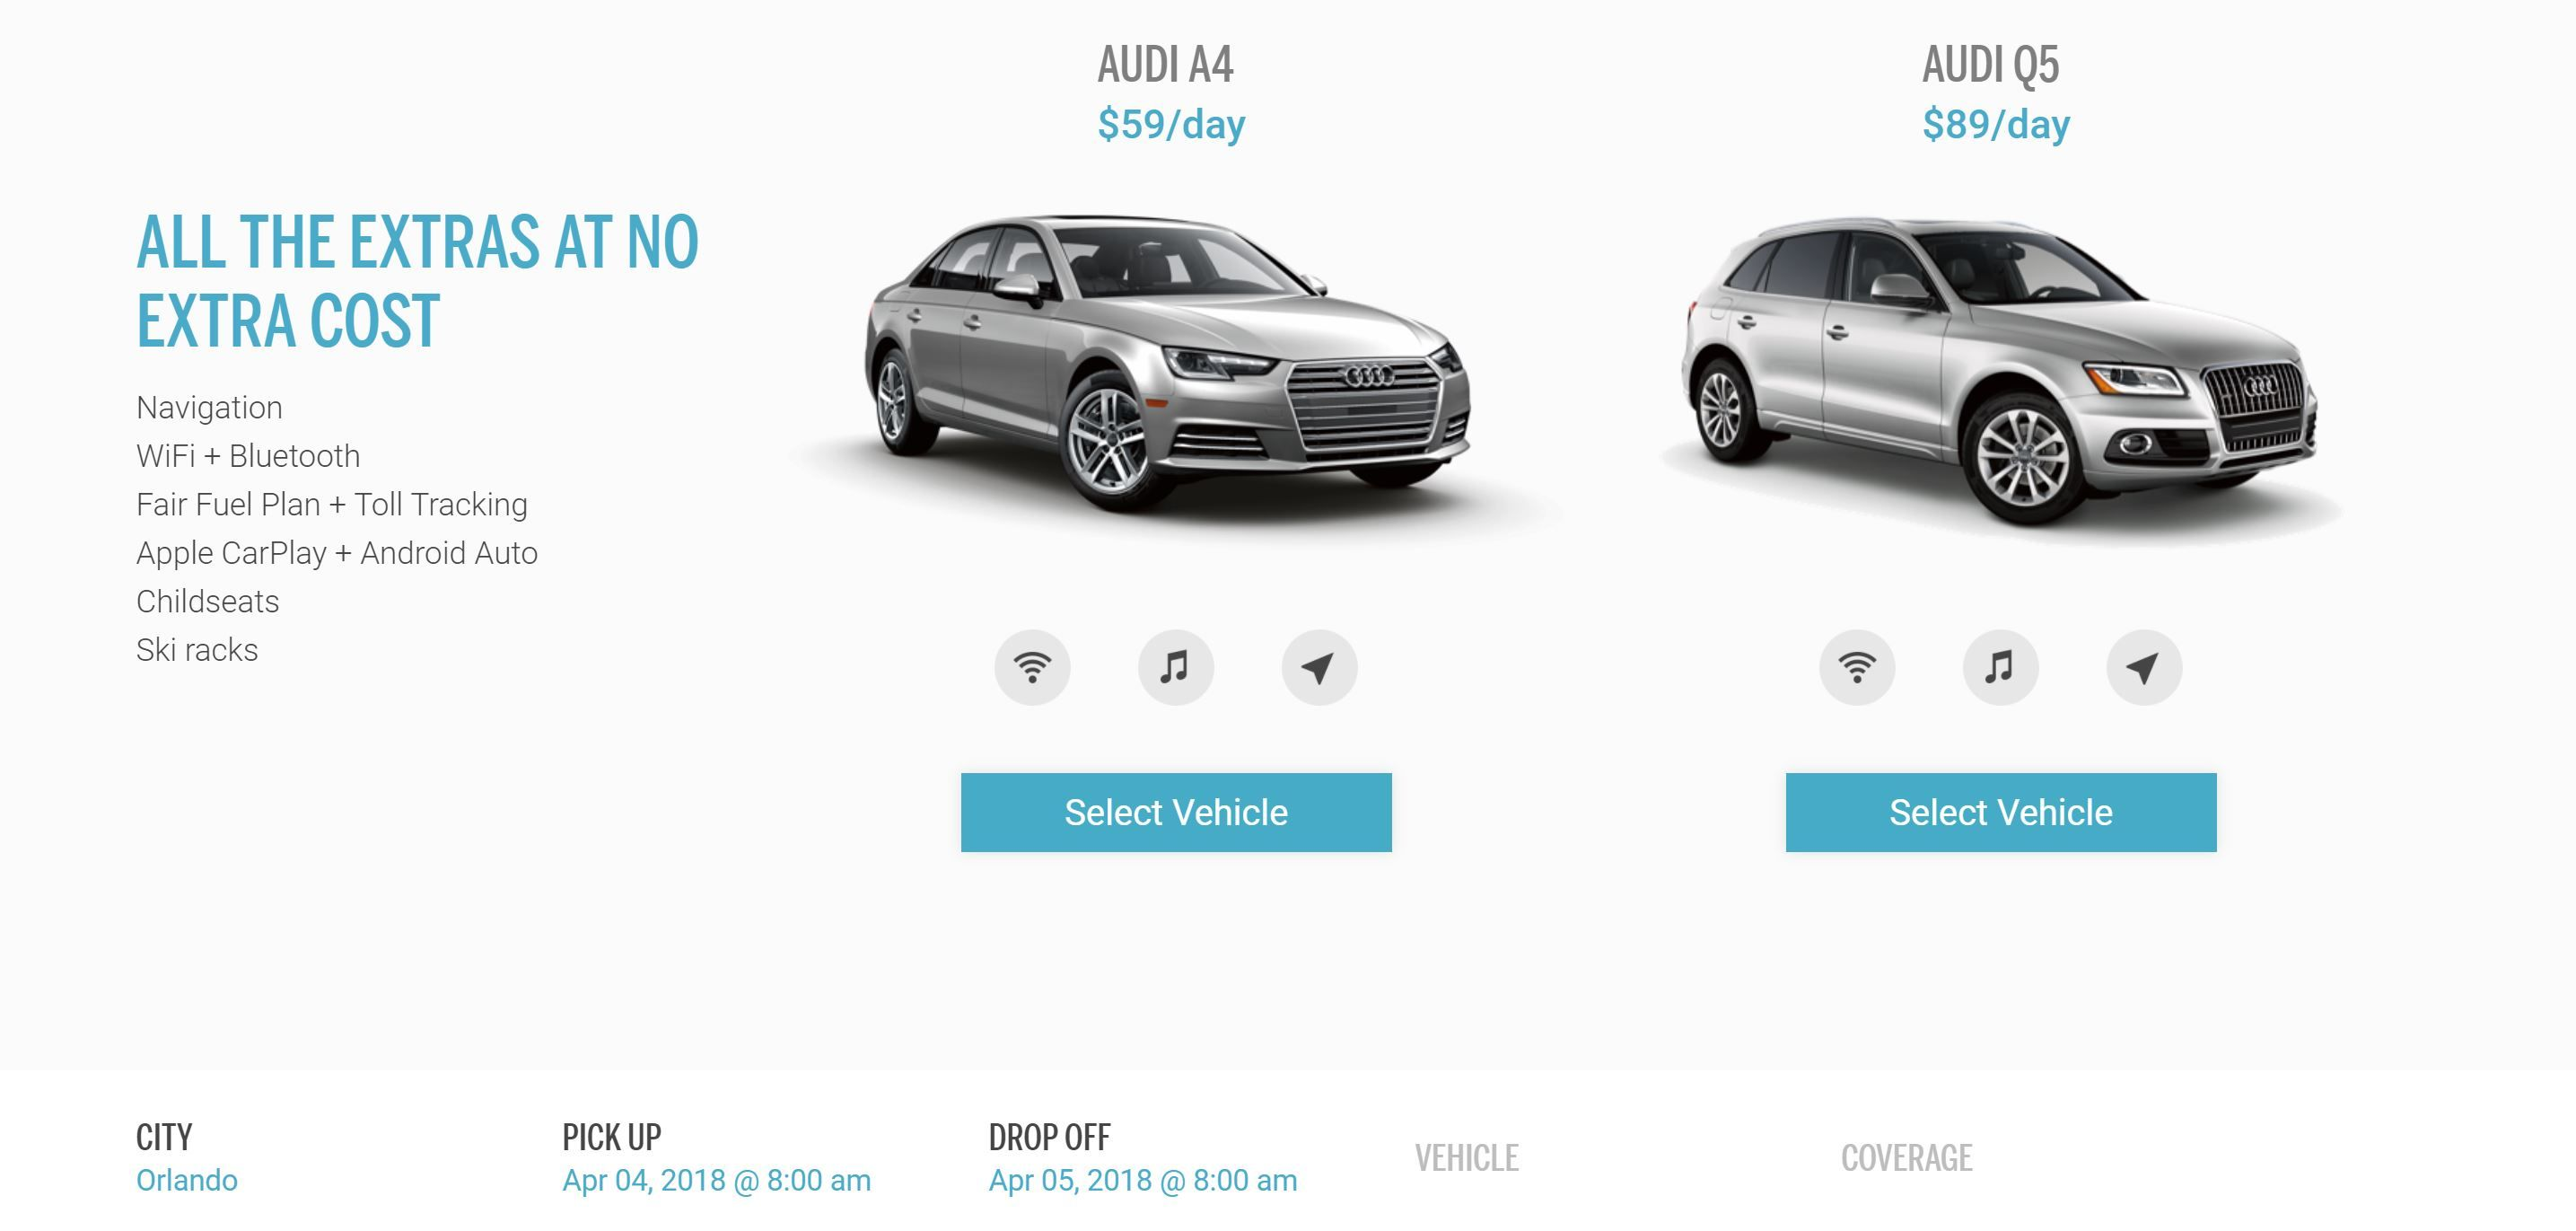 Silvercar Is Now Renting Audi Q5s in Nine Markets